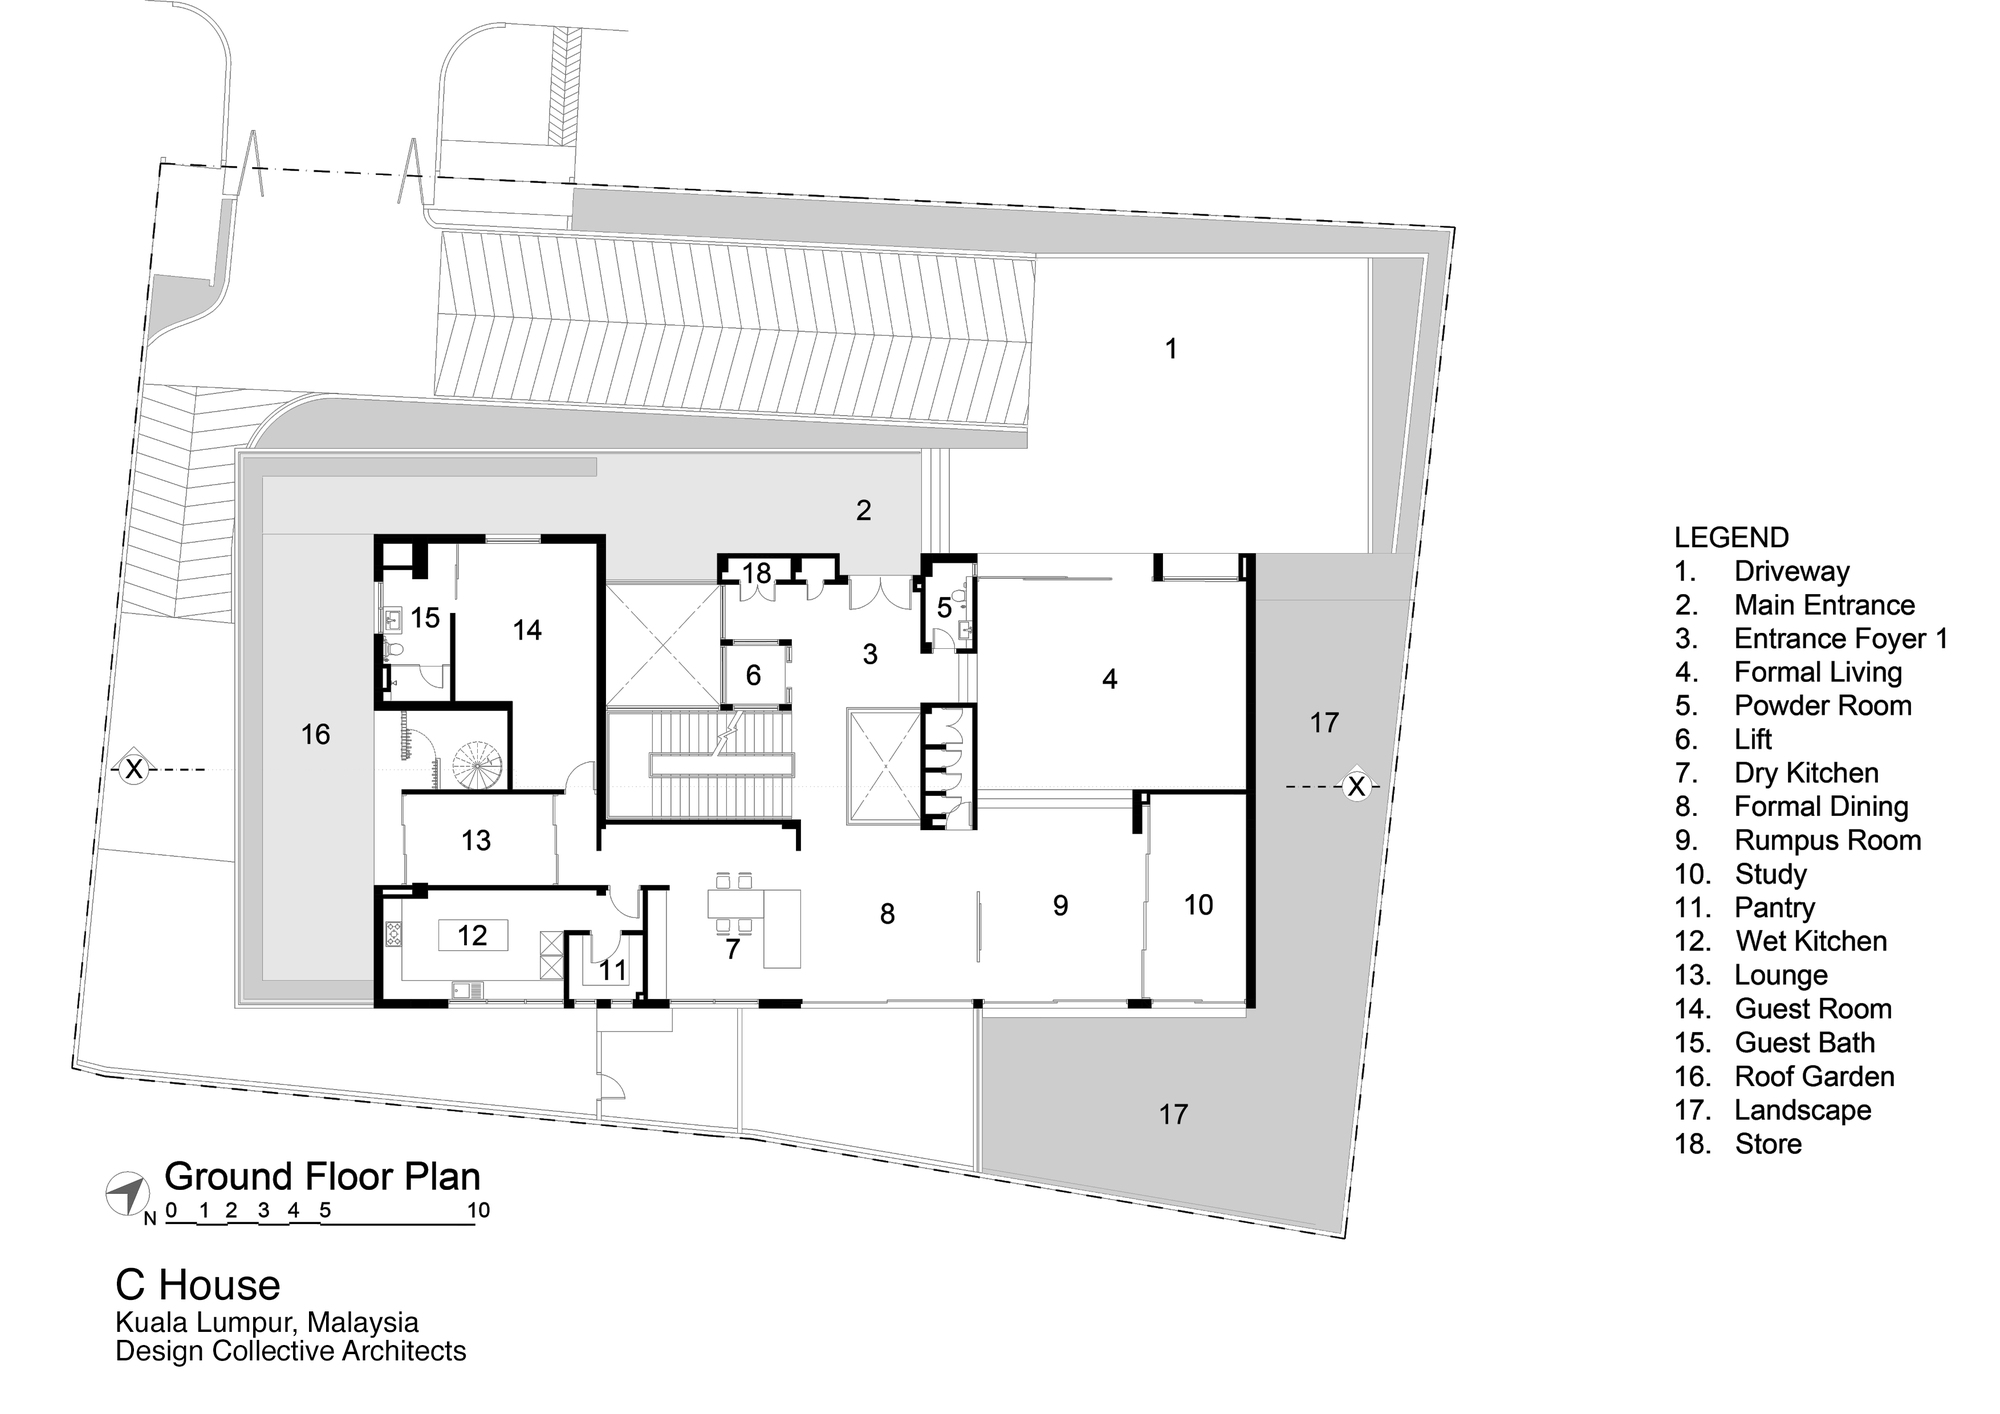 Gallery Of C House Design Collective Architect 28